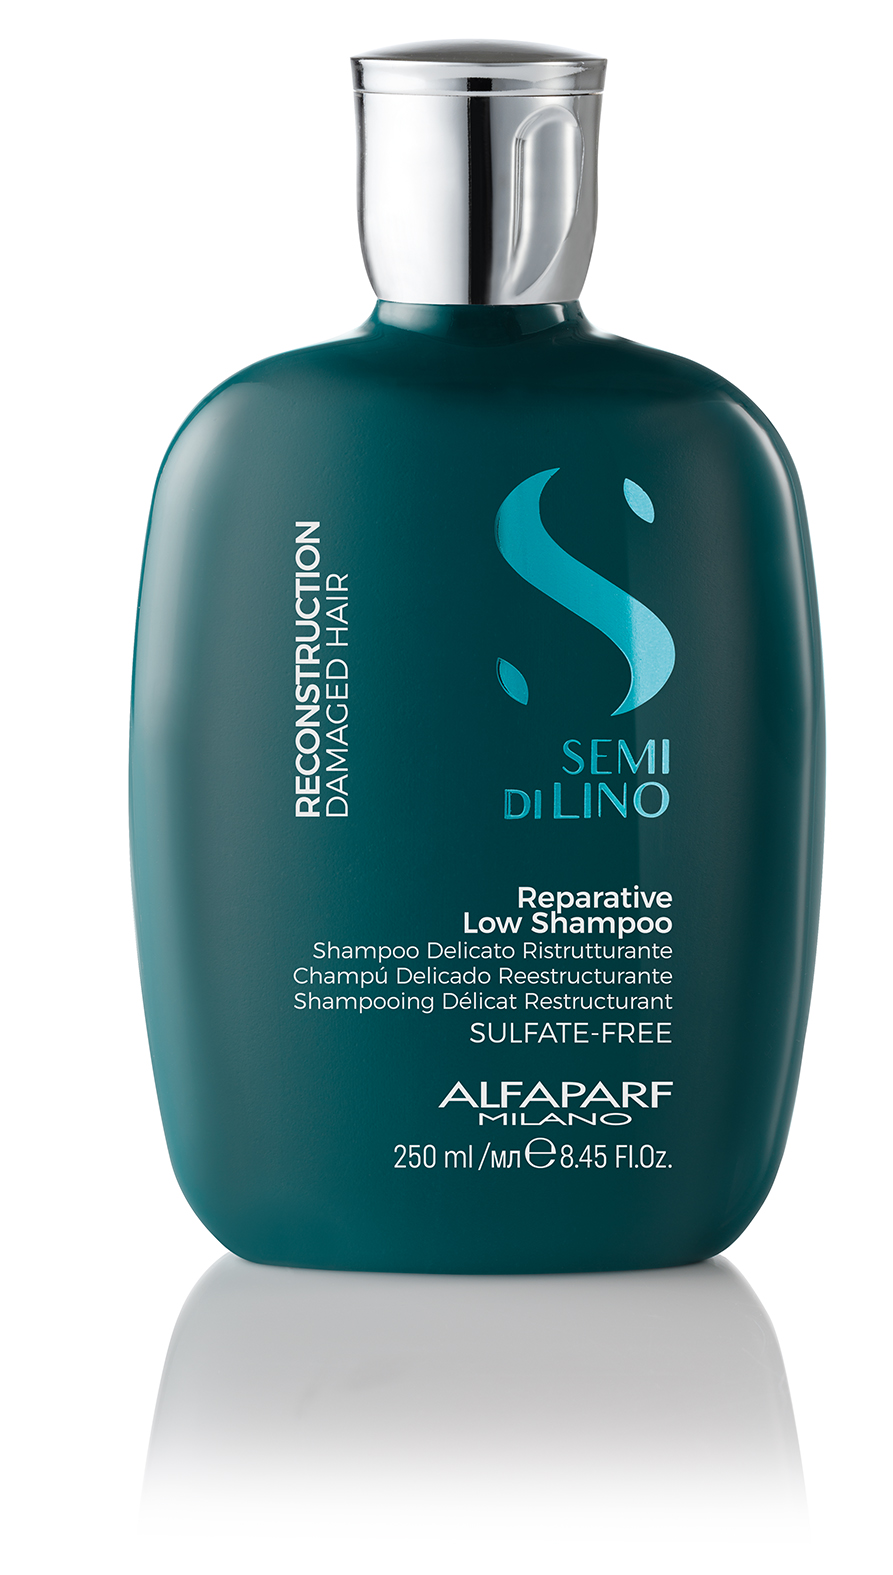 REPARATIVE LOW SHAMPOO    DESCRIPTION   Cleanses and restructures Strengthens  SULFATE FREE LIGHTNESS    FORMAT   Bottle 250ml